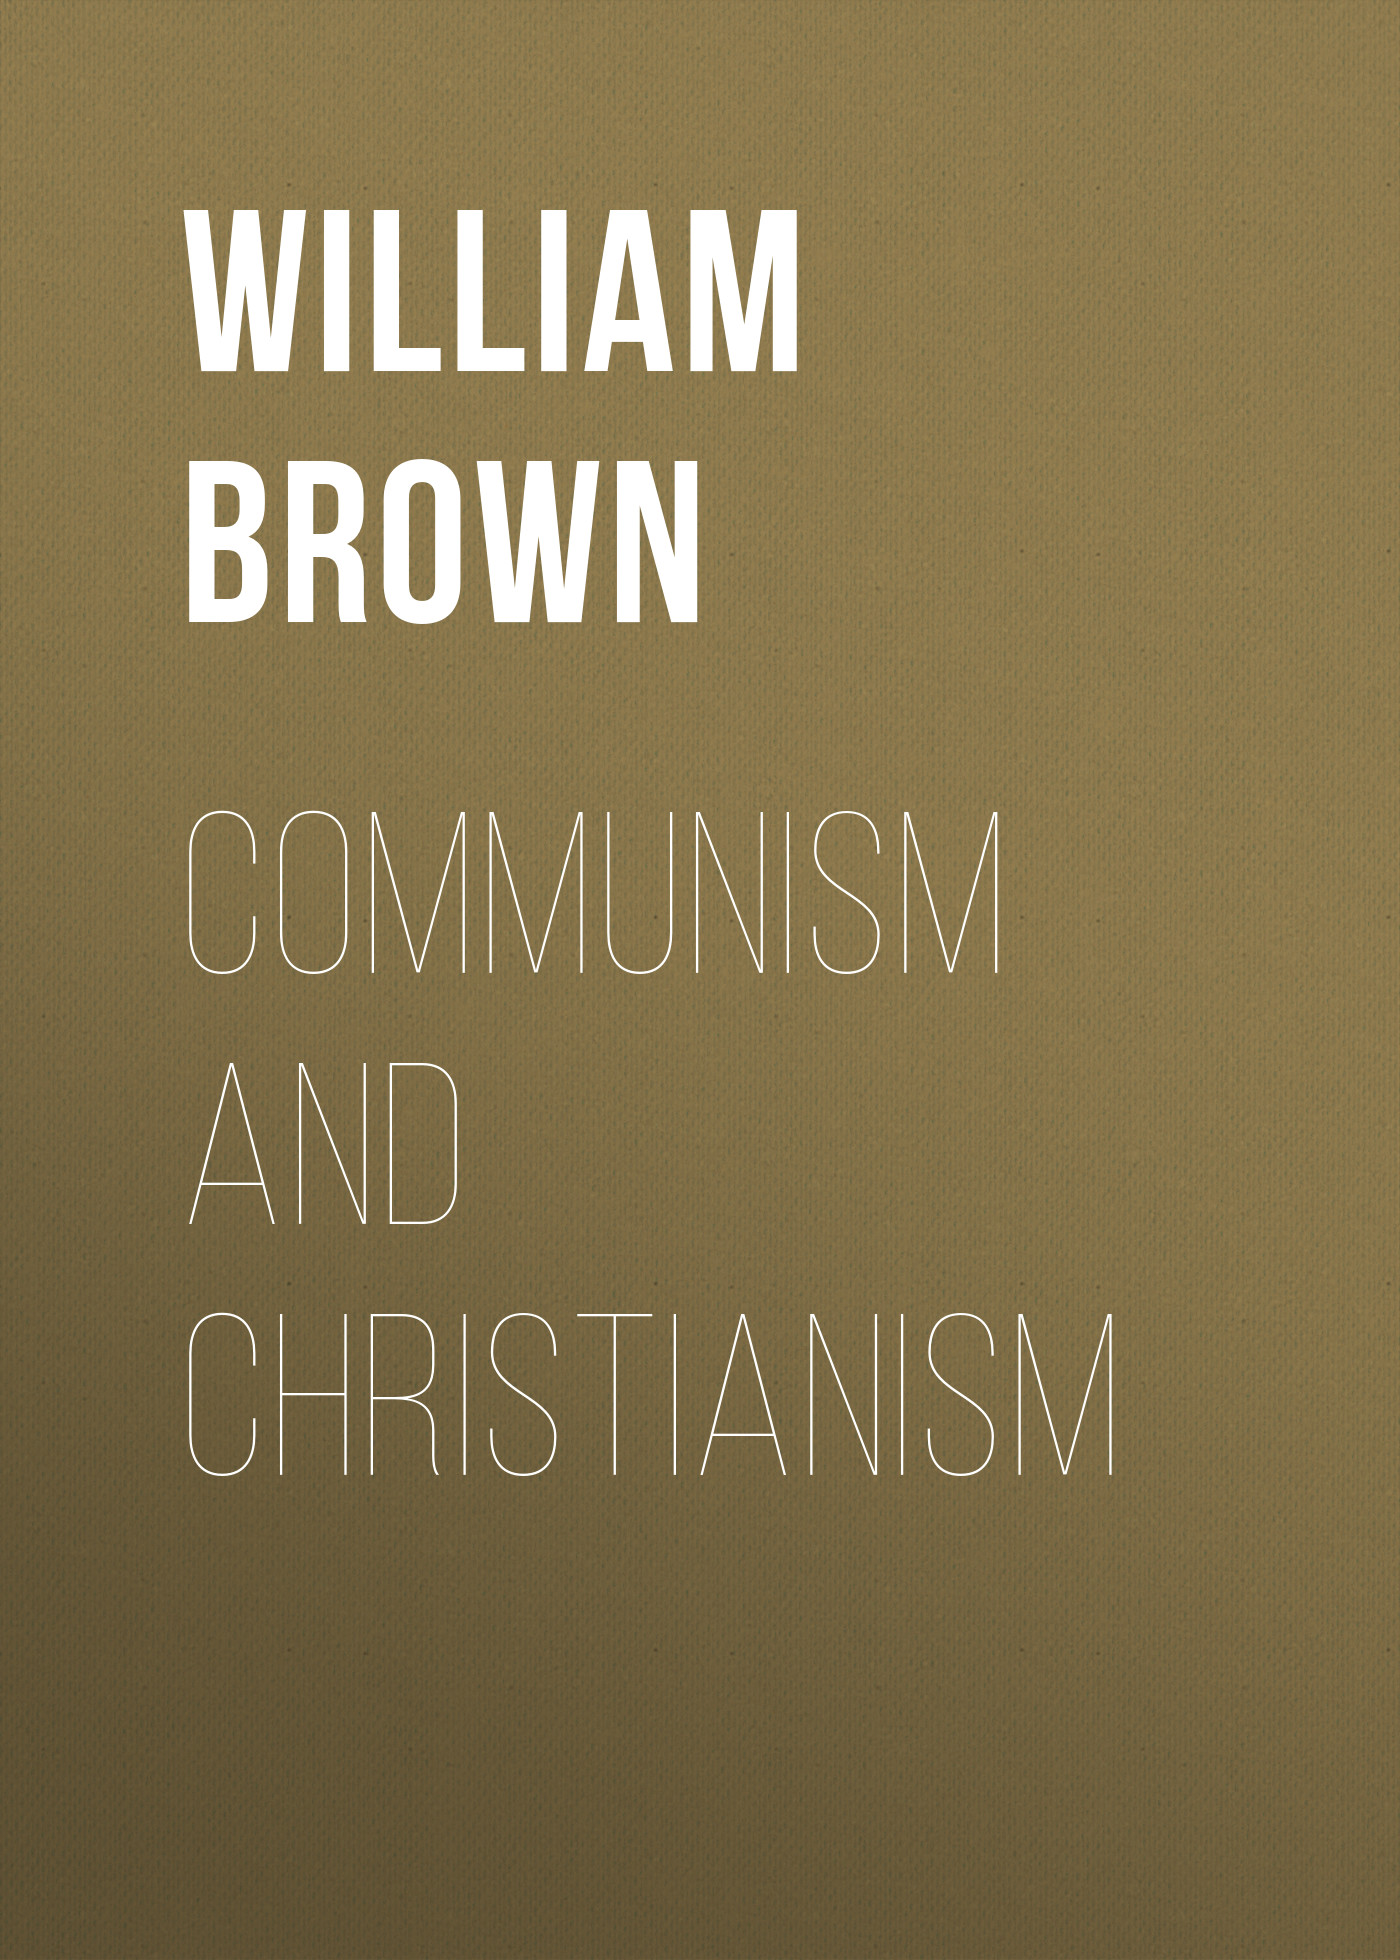 Brown William Montgomery Communism and Christianism ekaterina talalakina tony brown jennifer bown william eggington mastering english through global debate